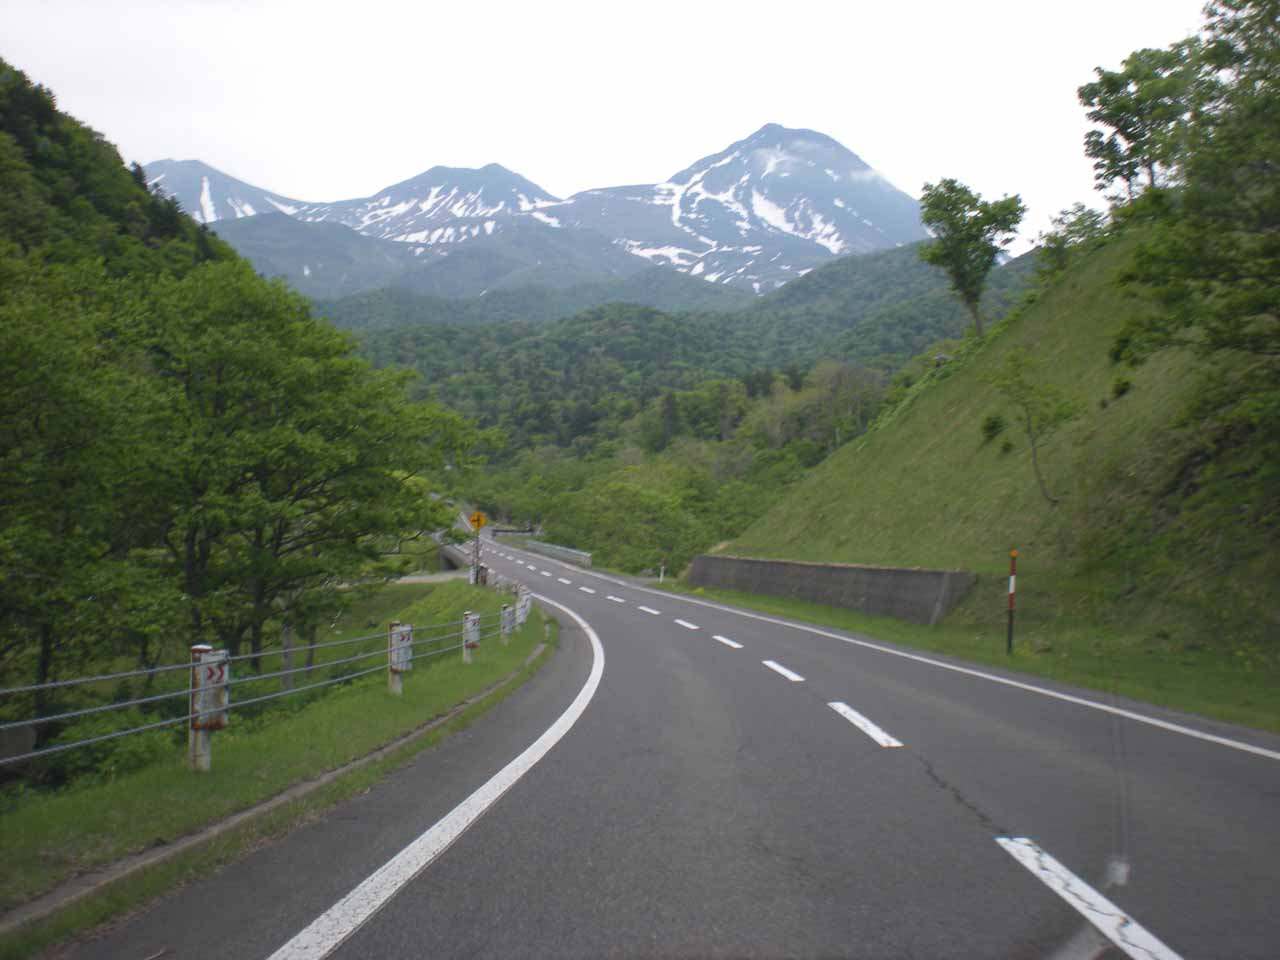 The road into the Shiretoko Goko area